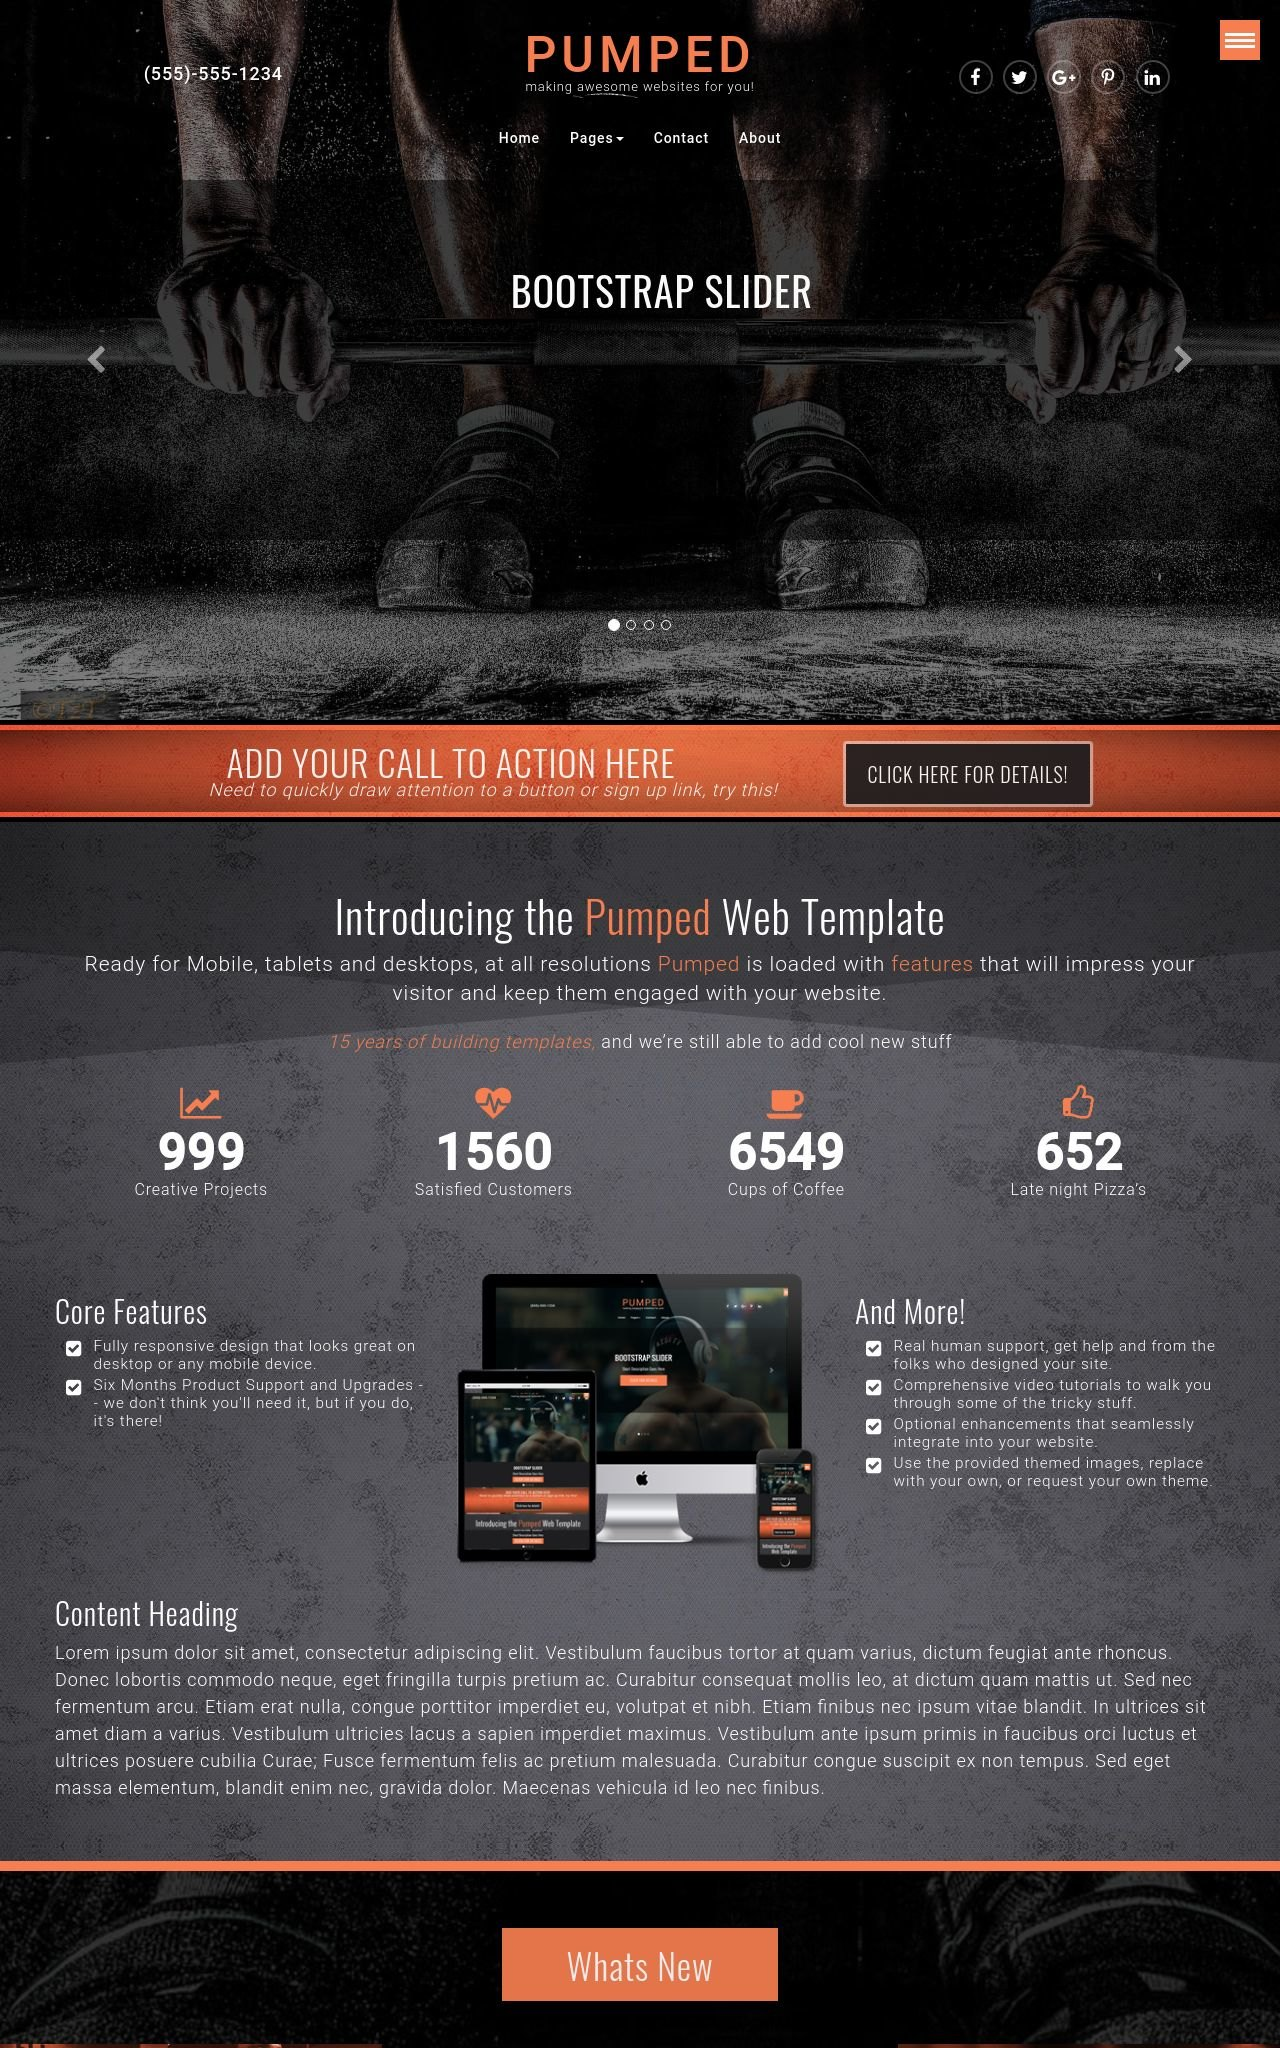 Pumped [HD] Fitness Orange/Black | Fitness Web Template